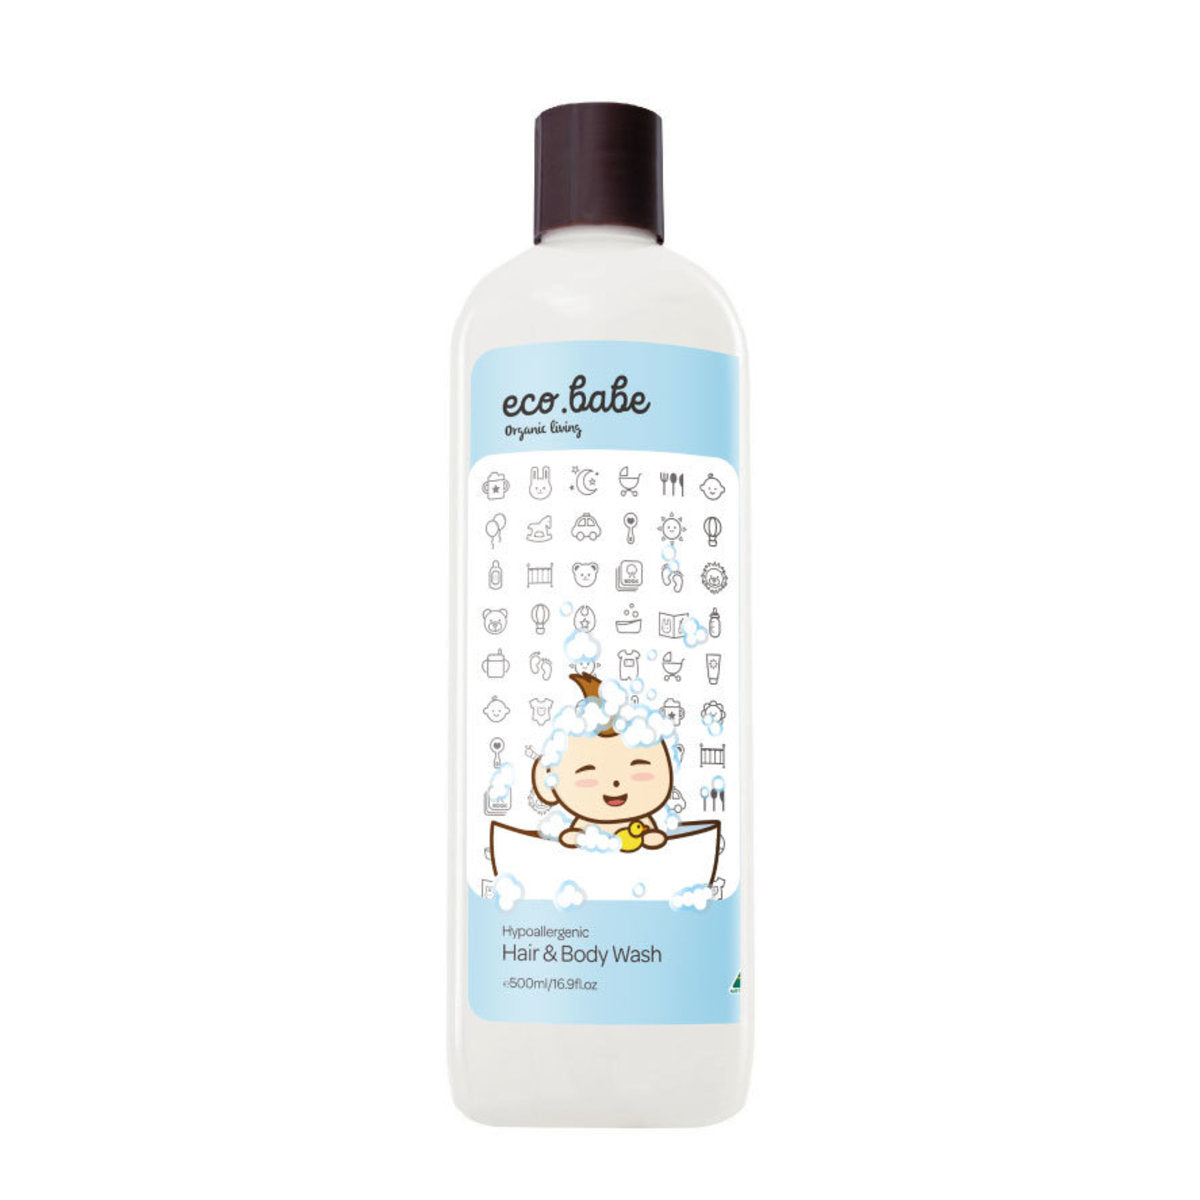 eco.babe organics Hypoallergenic Hair & Body Wash(500ml)澳洲有機減敏洗髮沐浴露